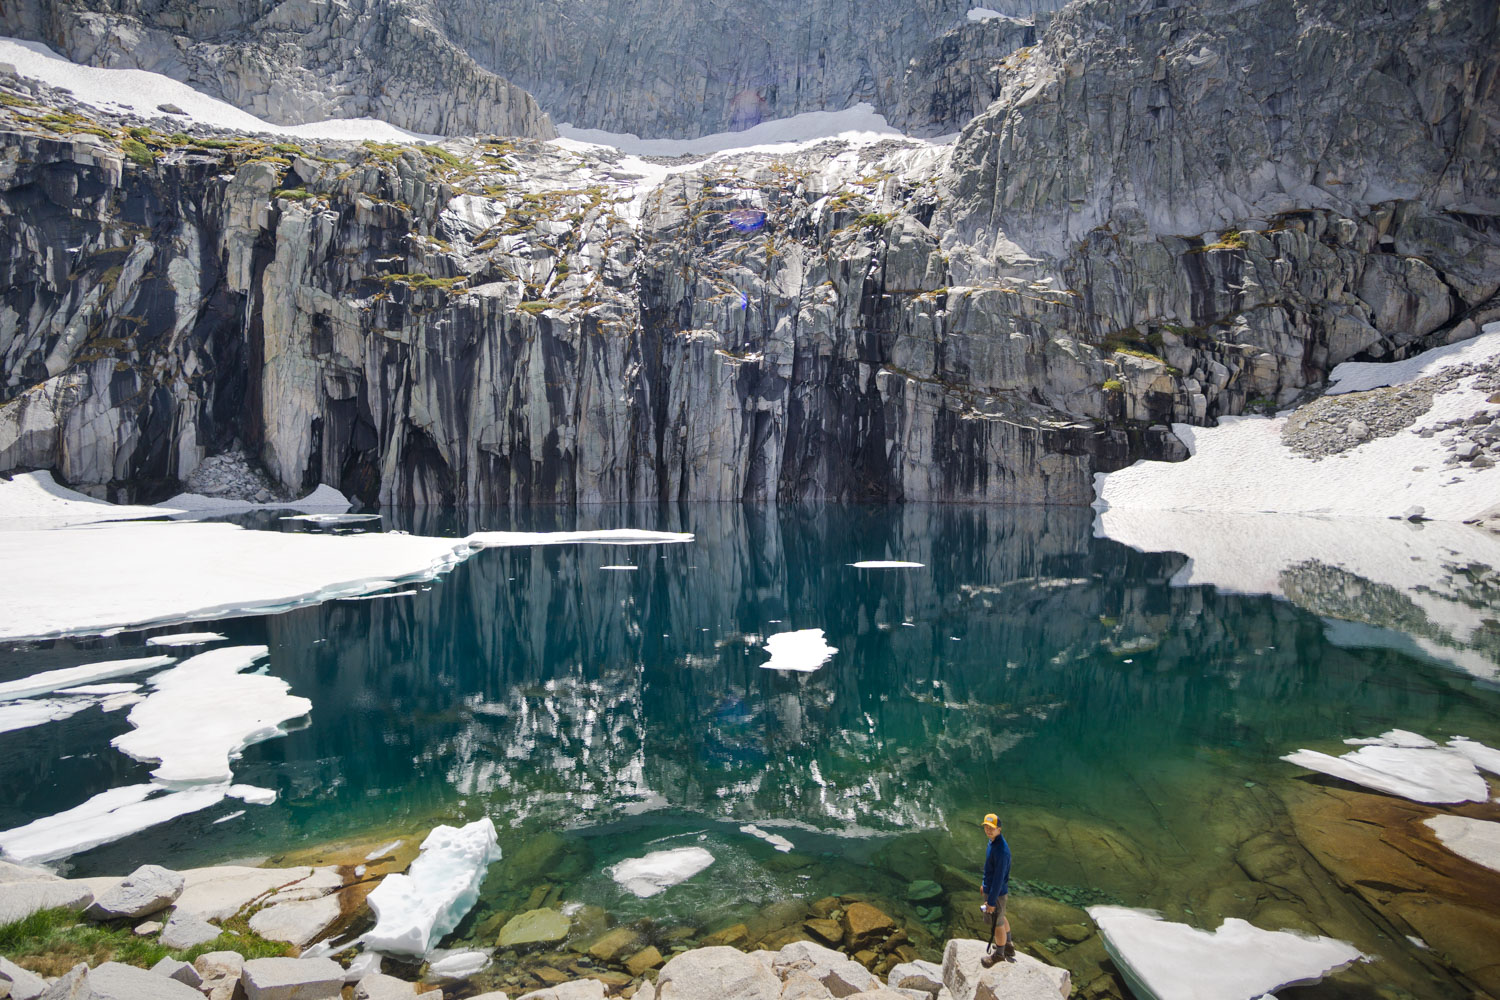 The jaw-dropping and entrancing Precipice Lake